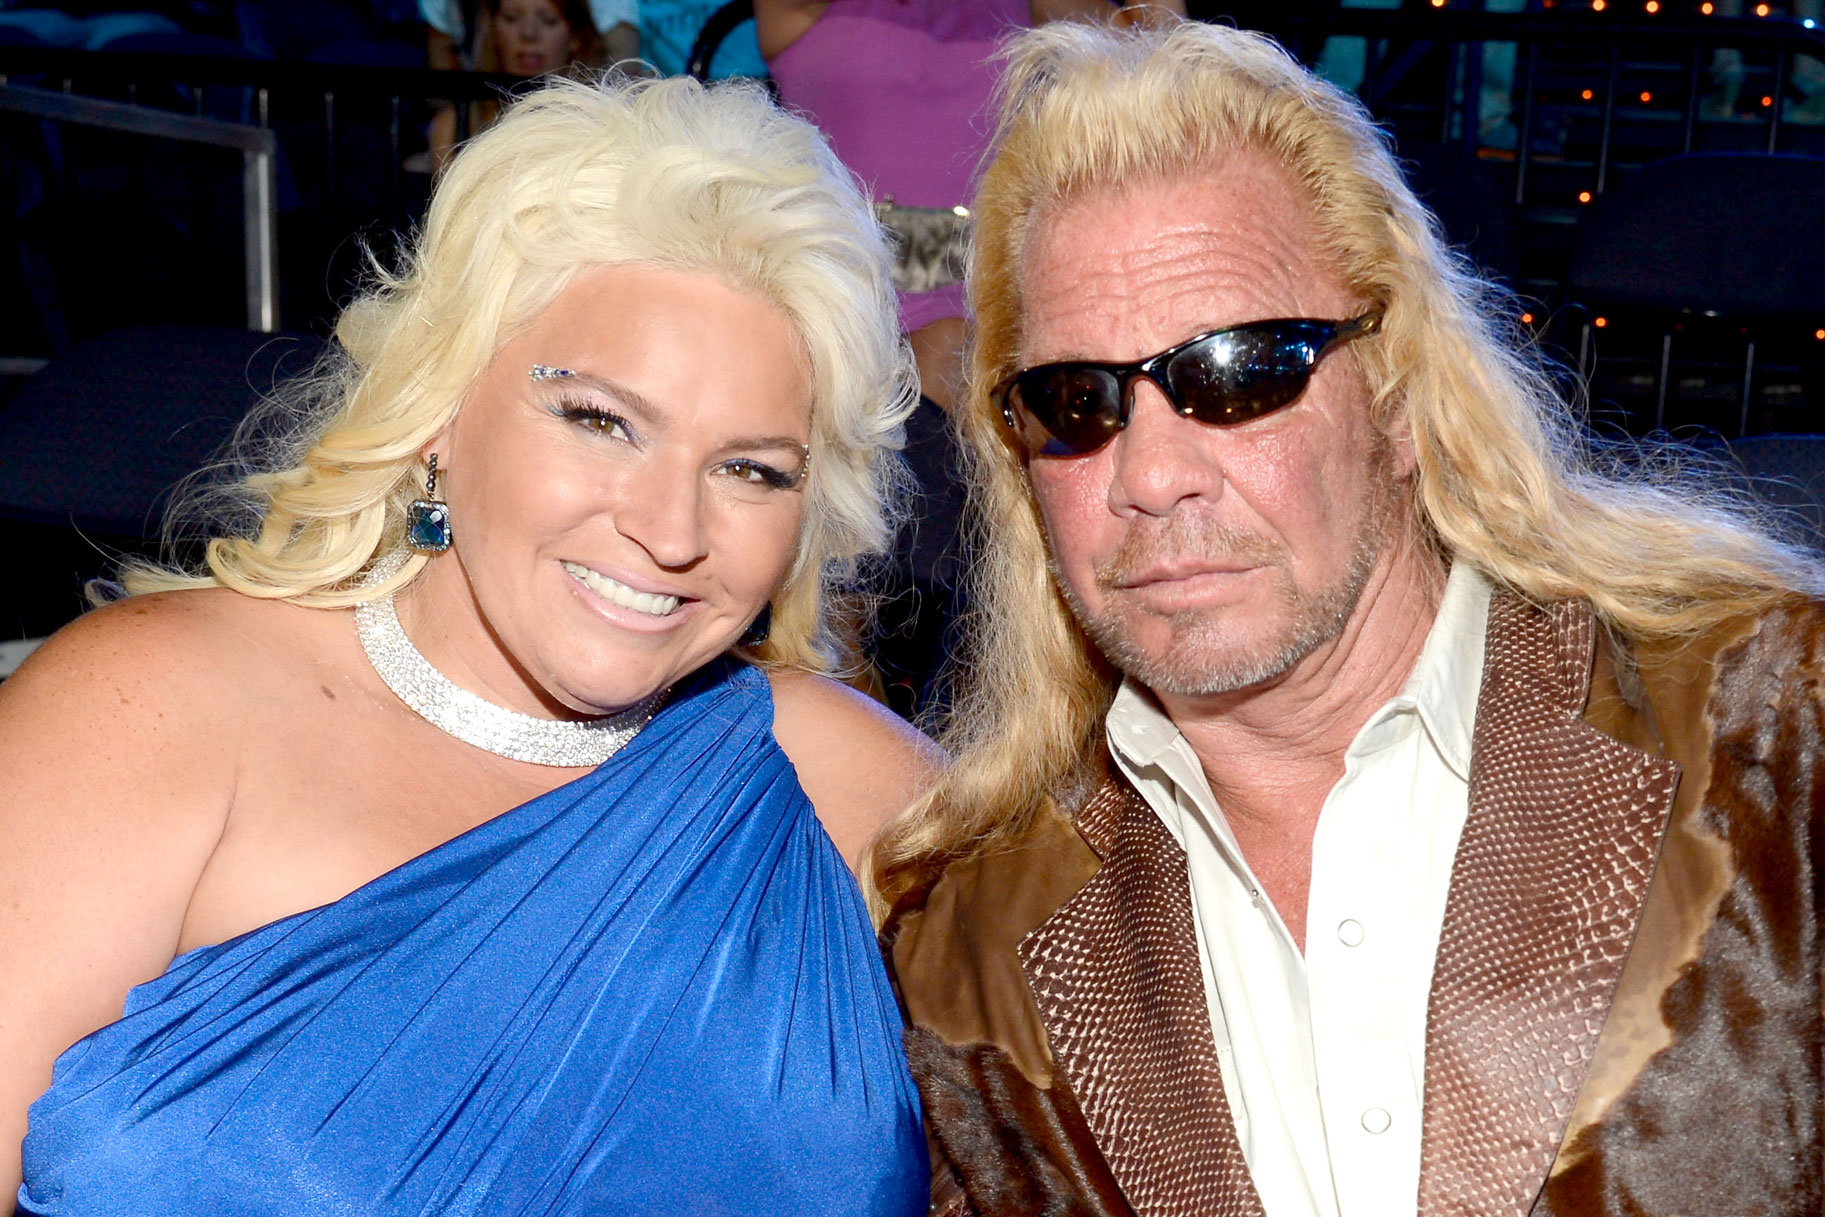 beth-chapman-dog-the-bounty-hunter